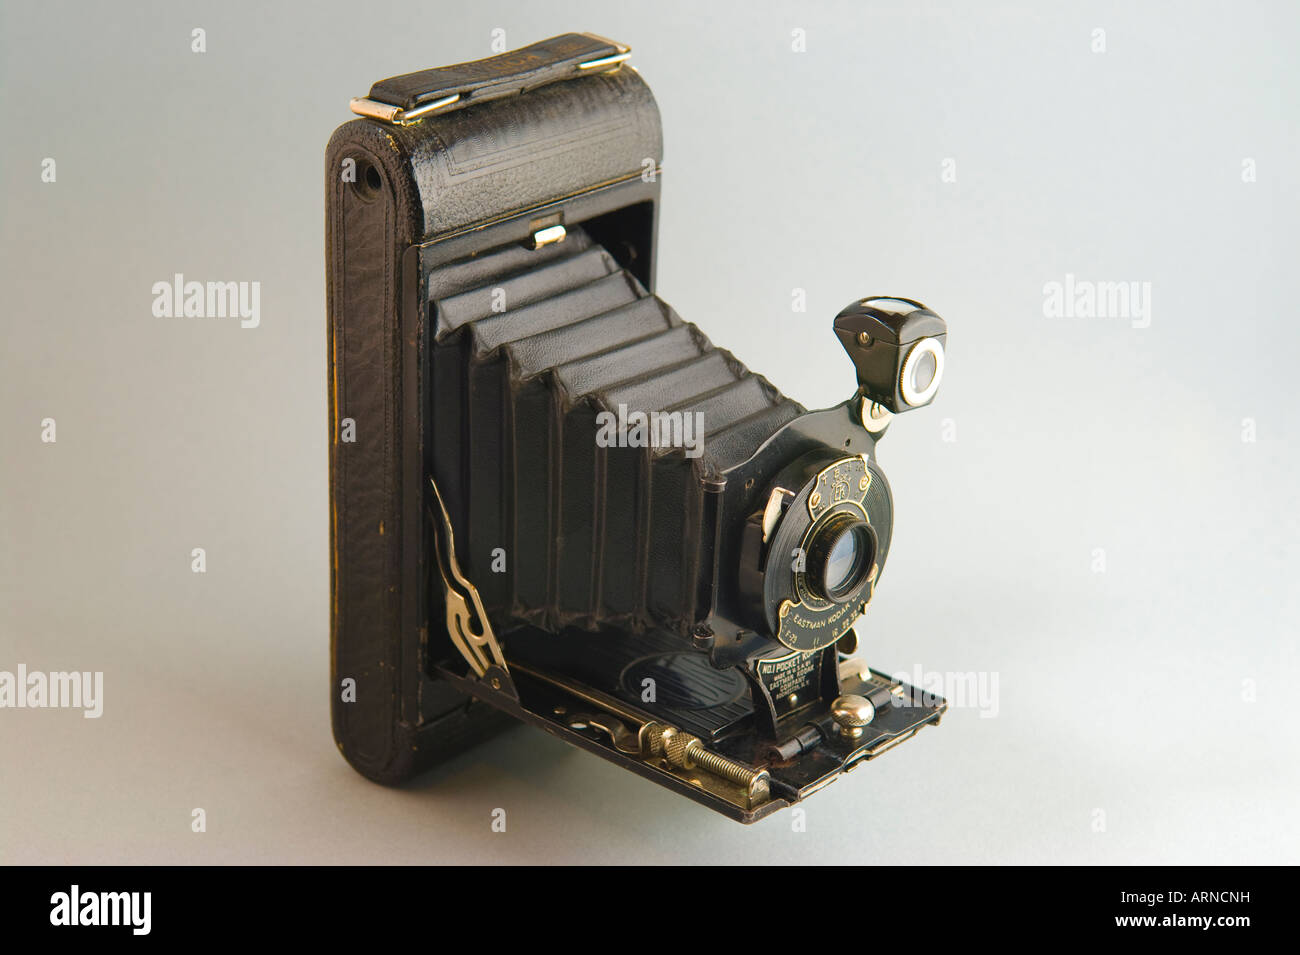 Eastman Kodak High Resolution Stock Photography And Images Alamy